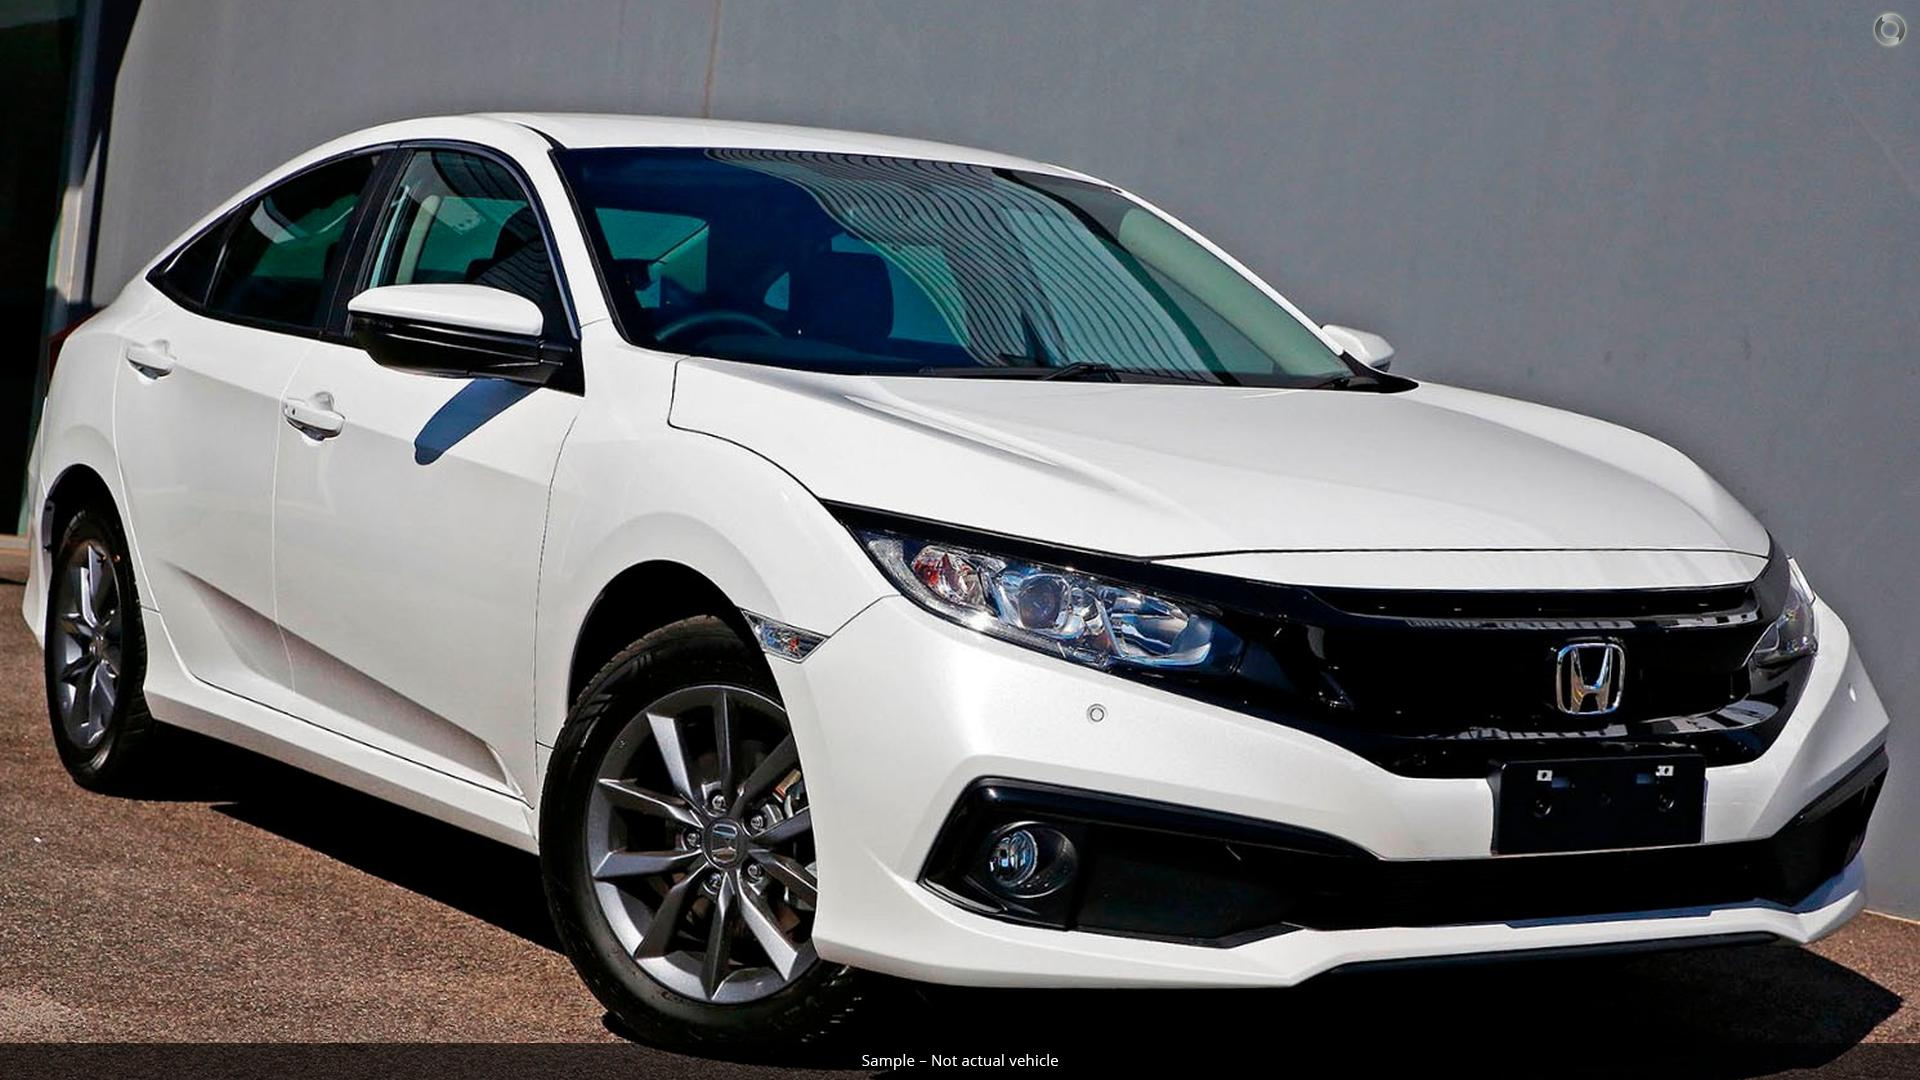 2019 Honda Civic 10th Gen